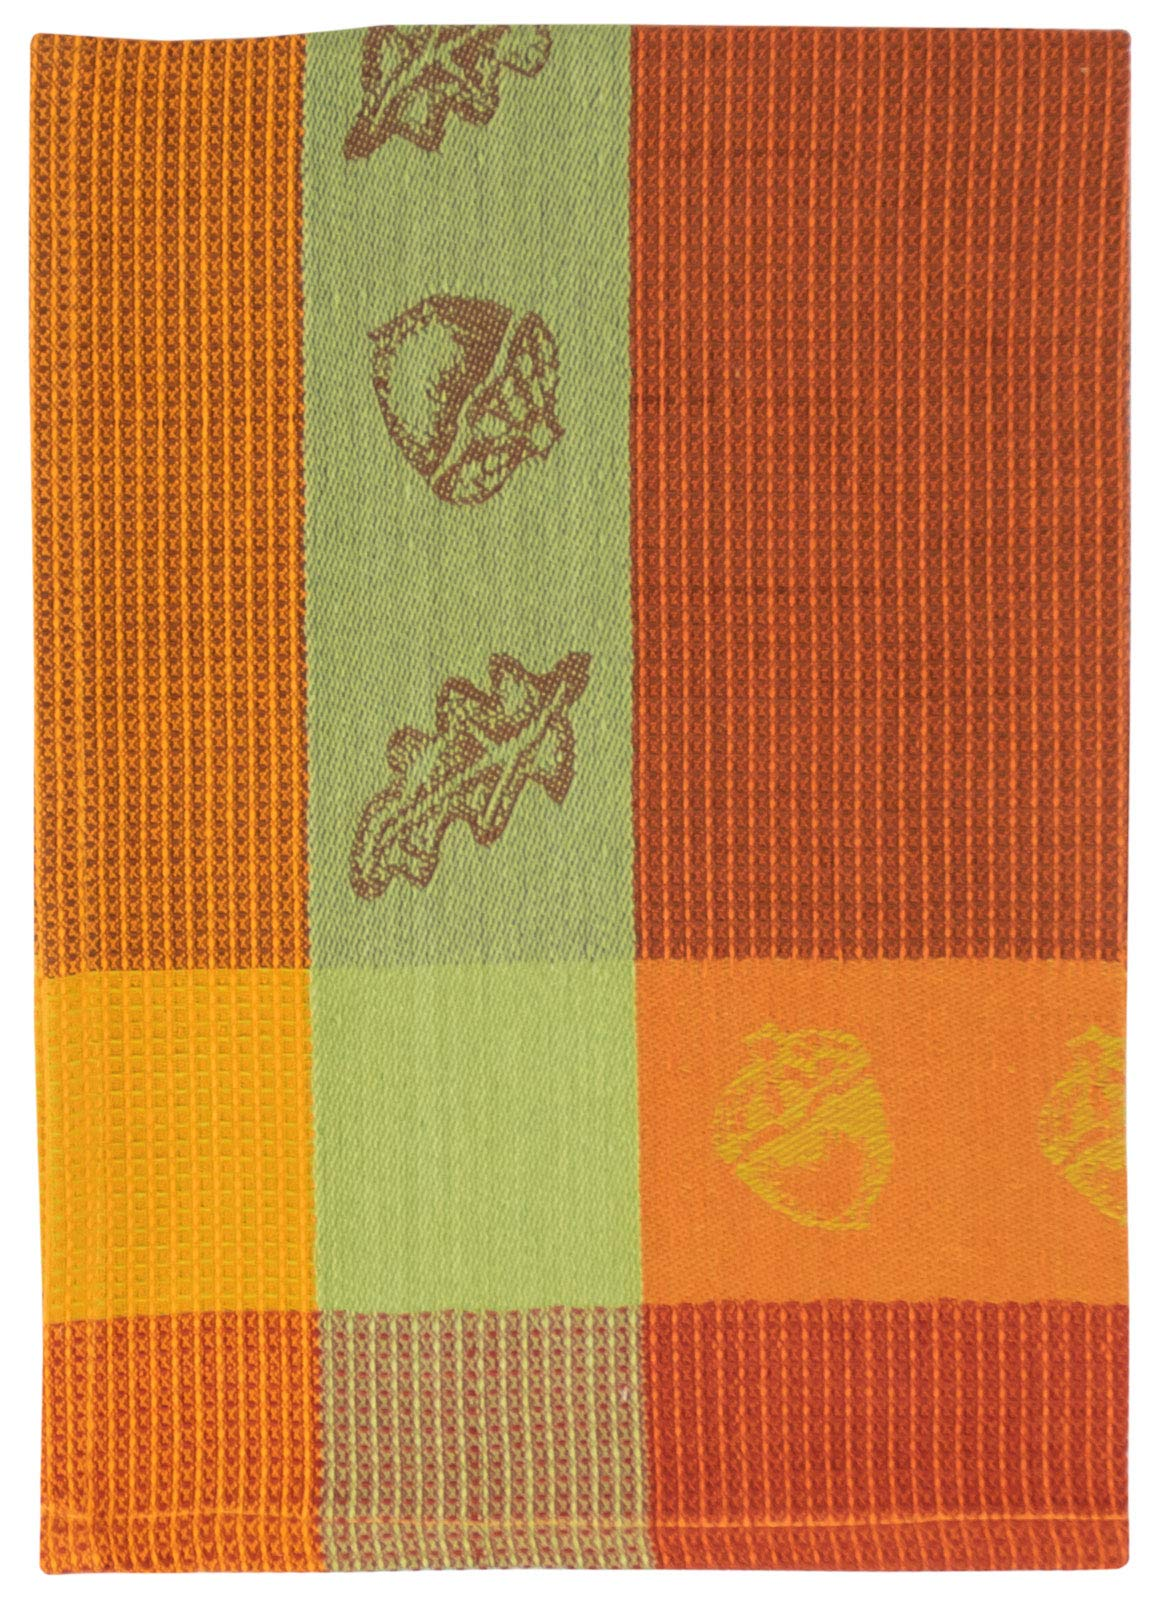 Traders and Company 100% Cotton Orange & Green 20''x28'' Dish Towel, Set of 6 - Acorn Pumpkin by Traders and Company